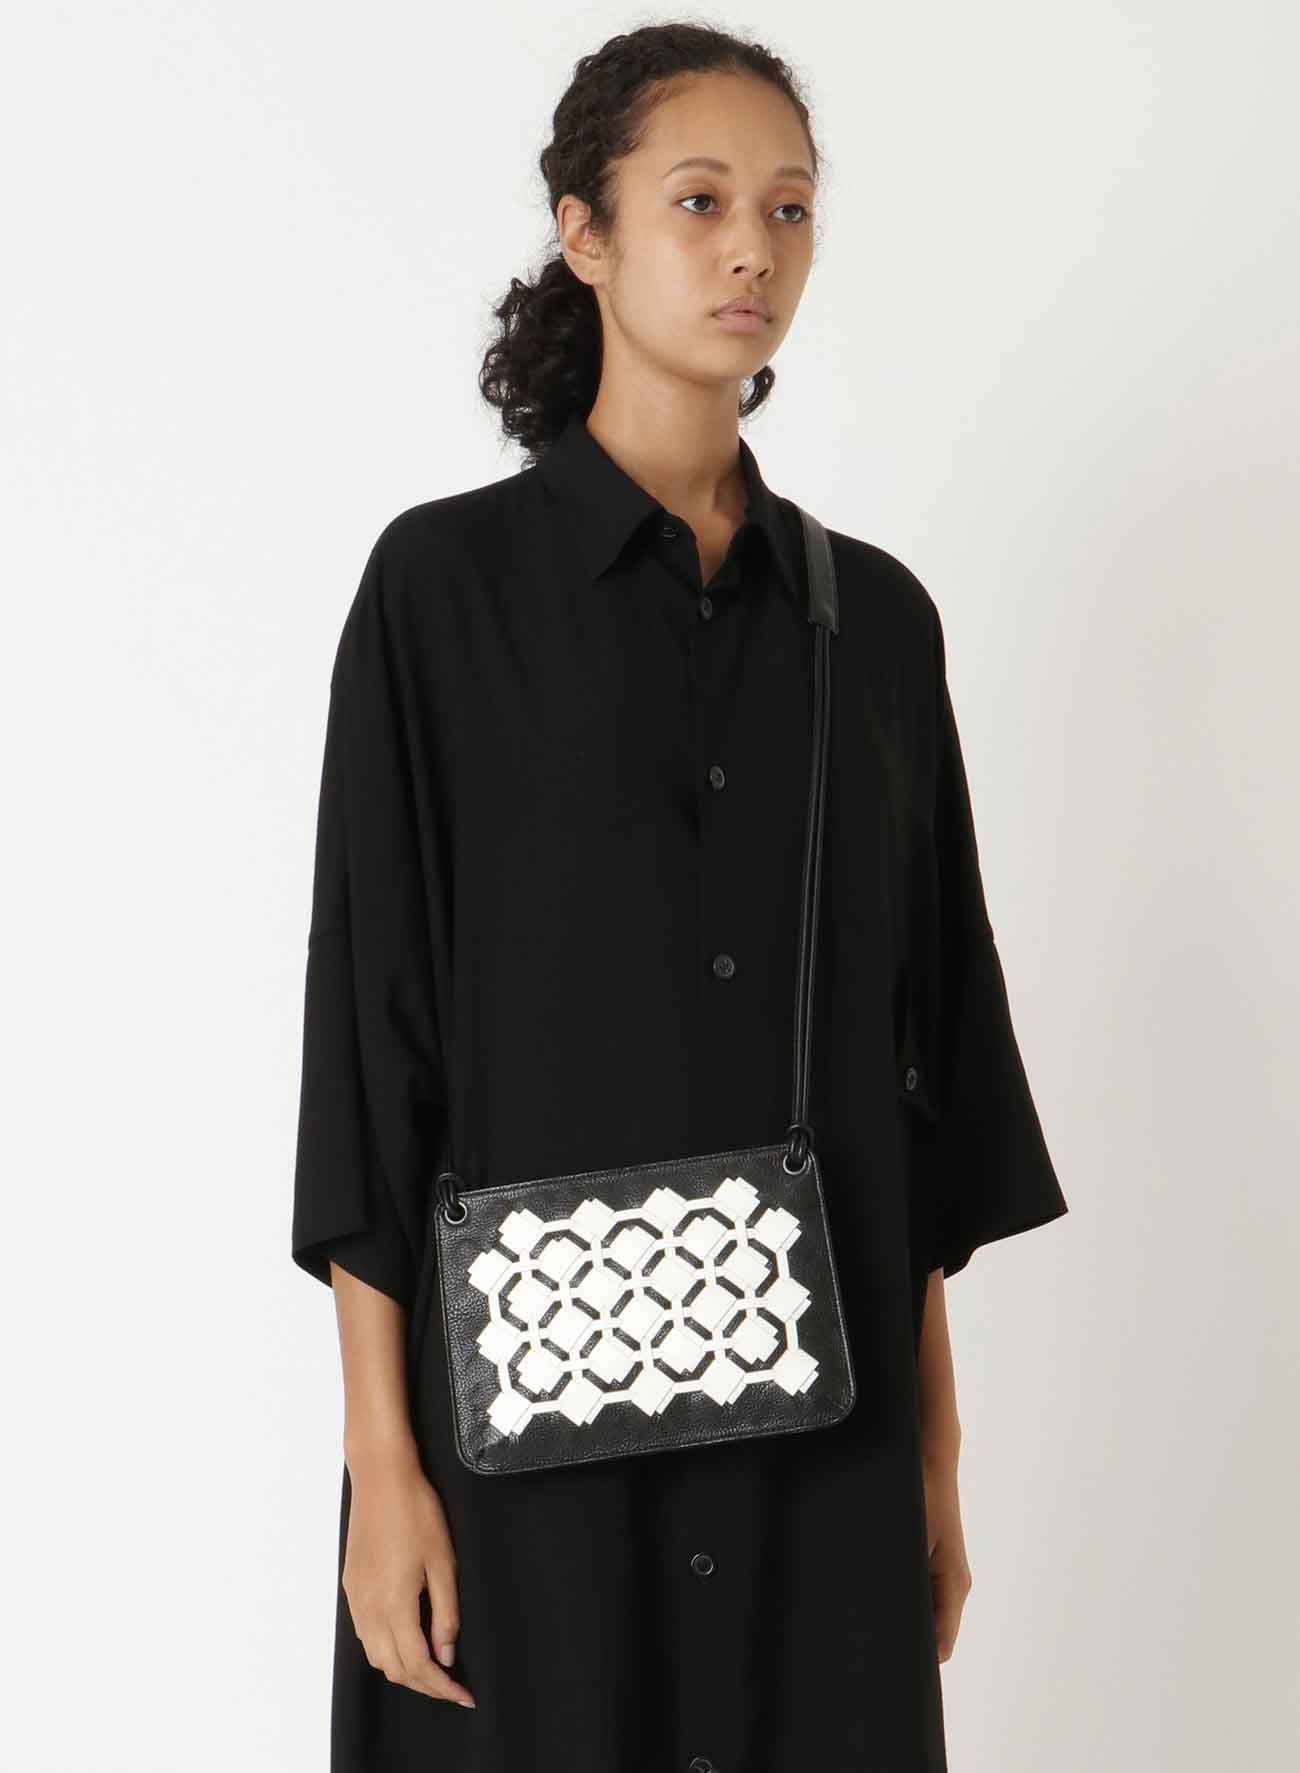 KNITTED LEATHER KNIT FASTENER POCHETTE